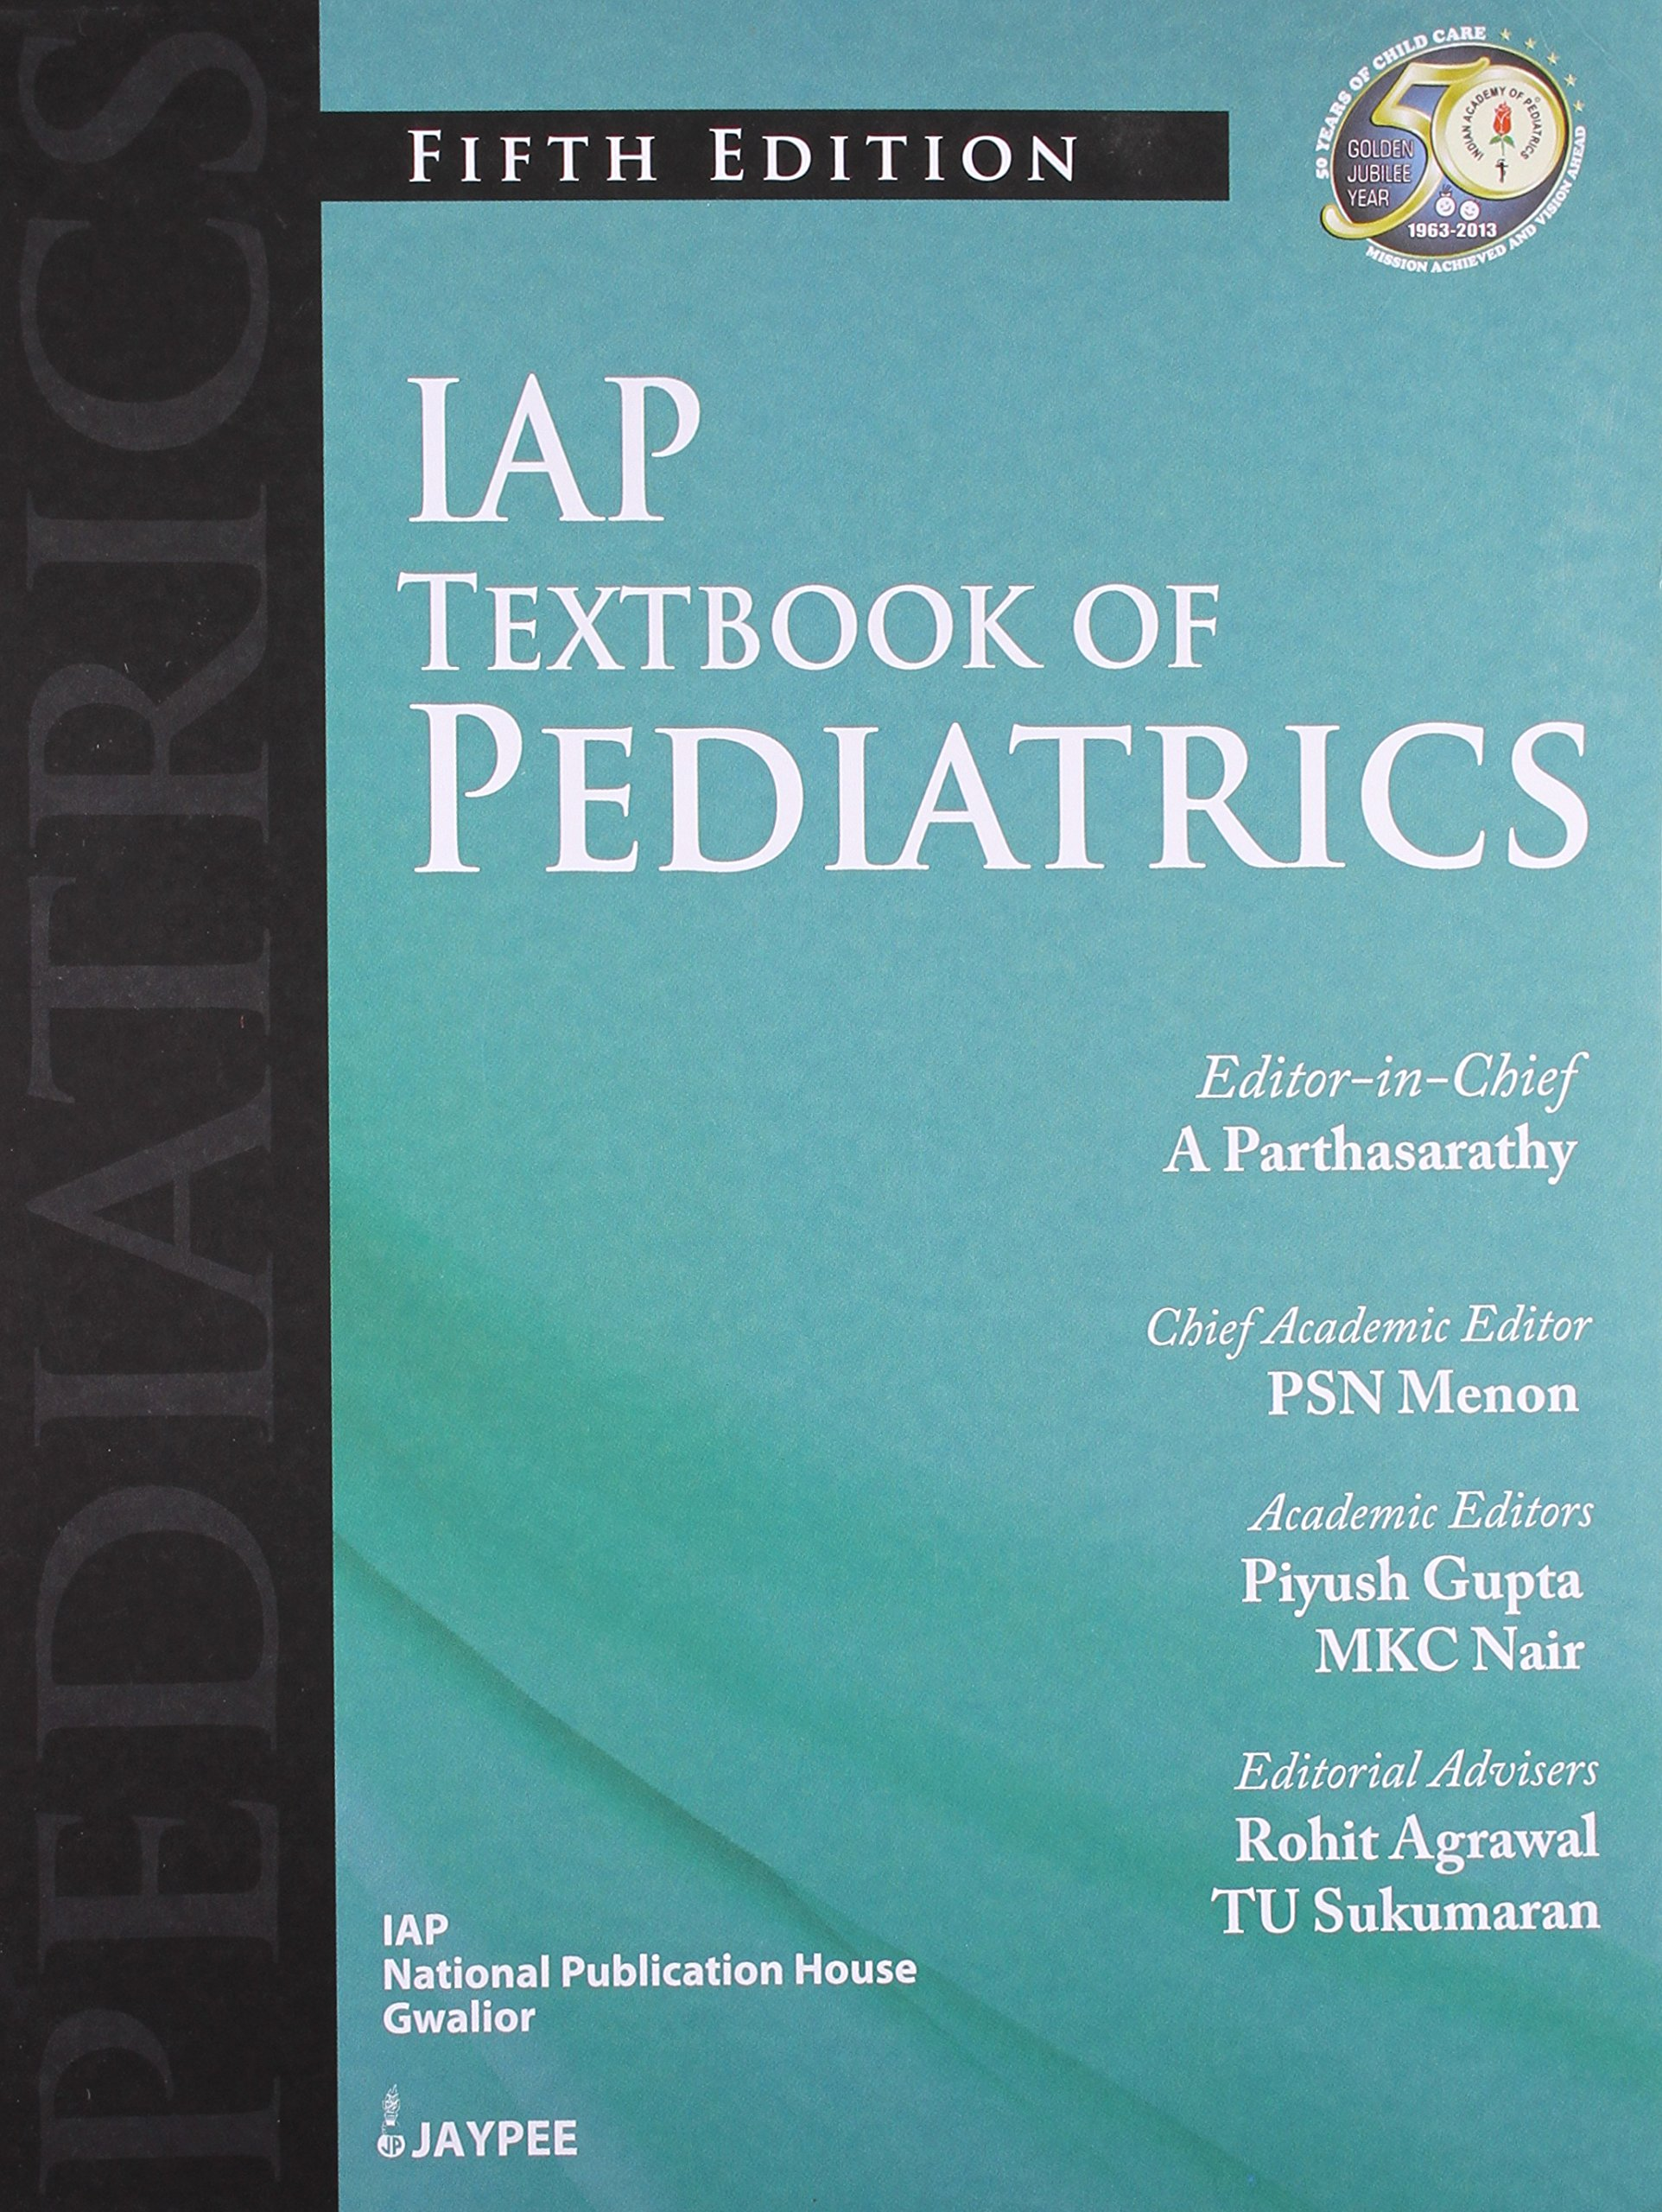 pg textbook of pediatrics piyush gupta pdf free download